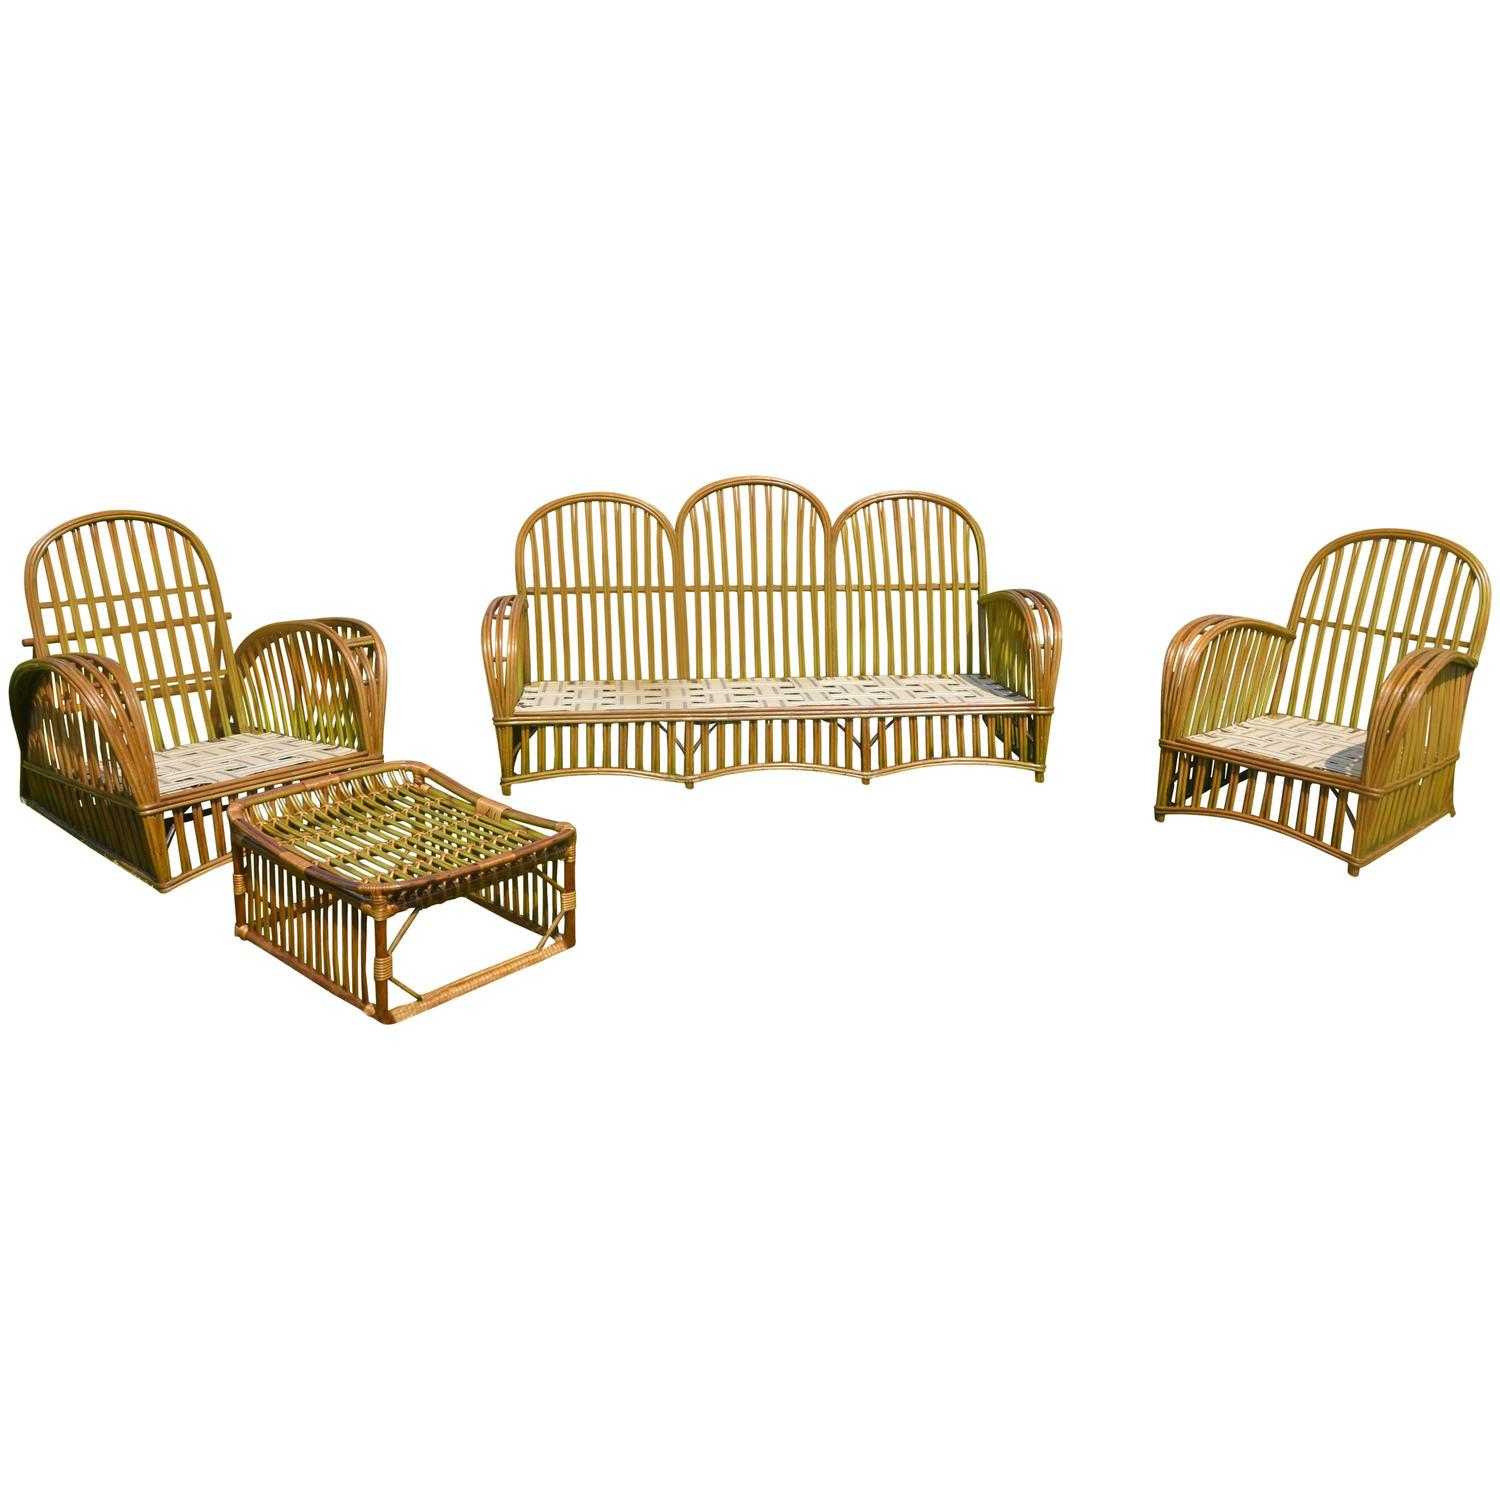 heywood wakefield wicker chairs folding cane chair antique stick set for sale at 1stdibs